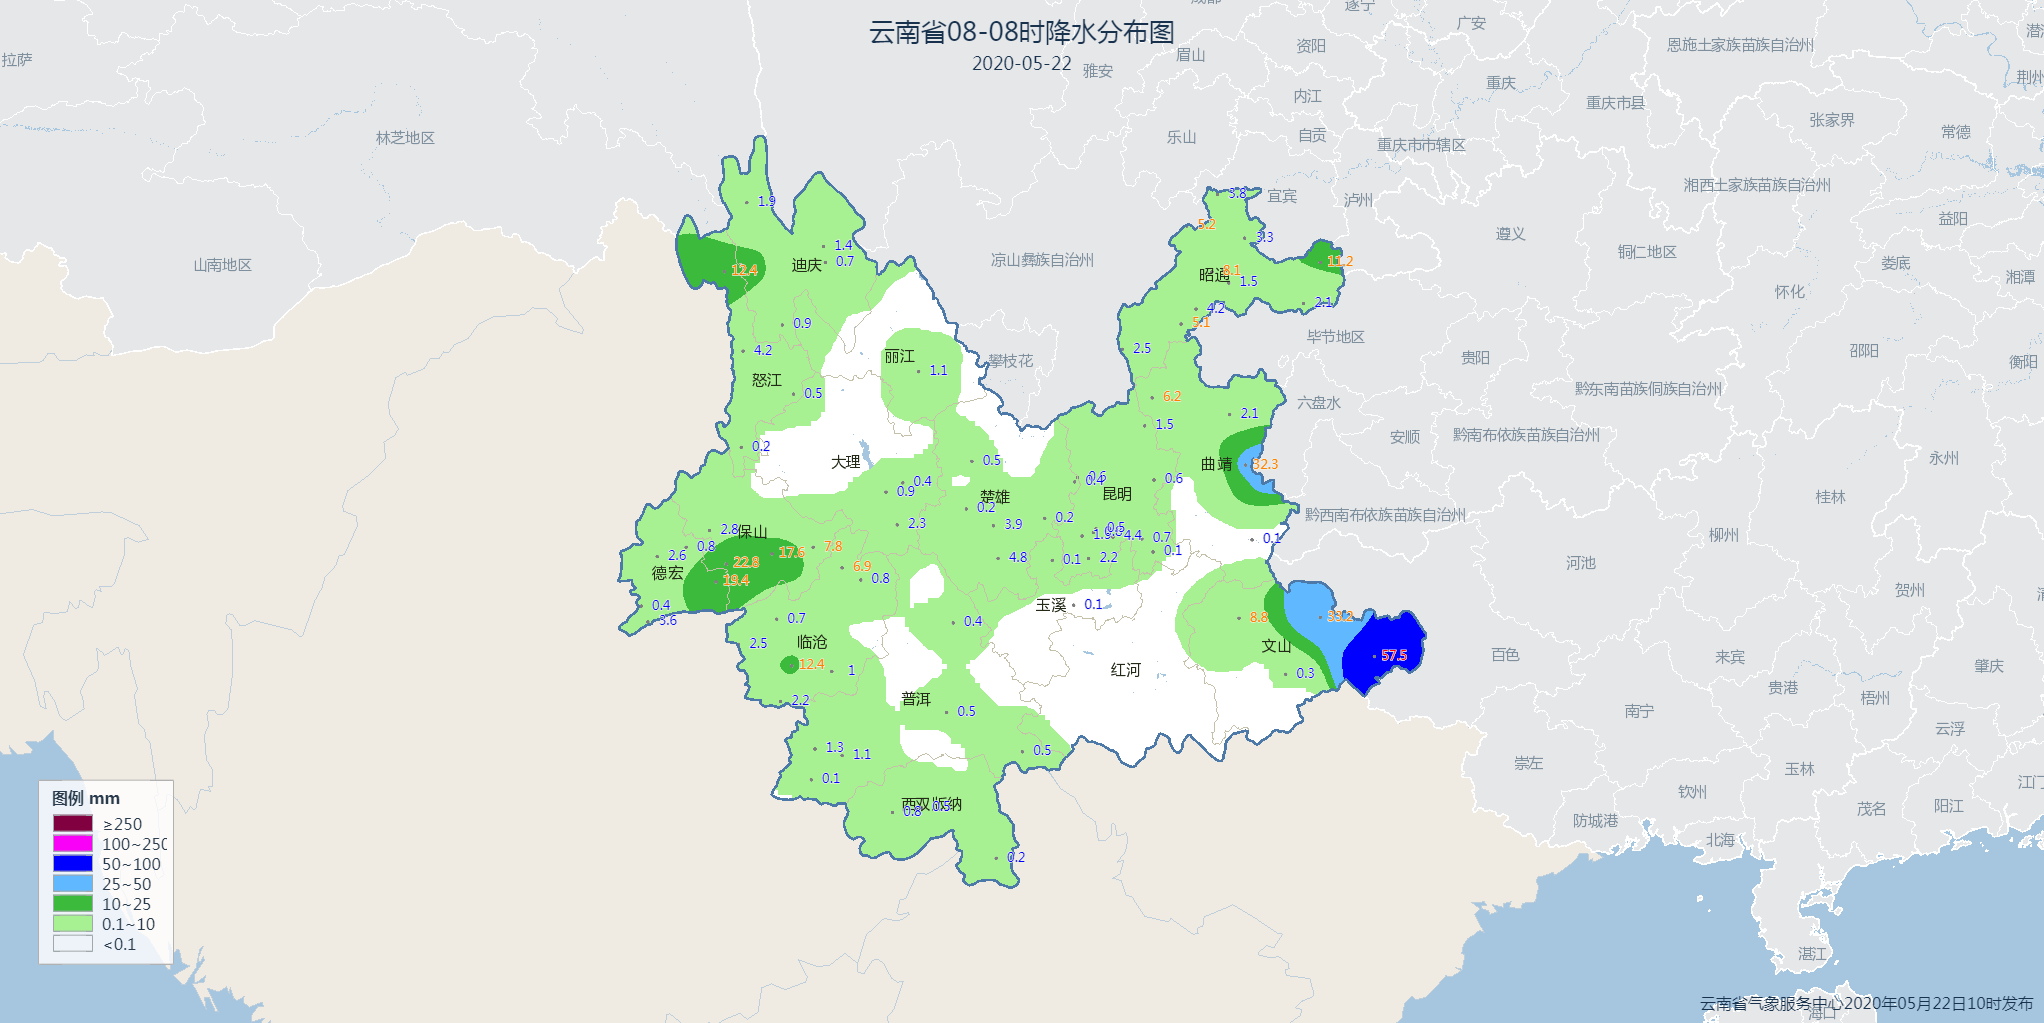 http://i.weather.com.cn/images/yunnan/tqyw/2020/05/22/1590114100040074984.png